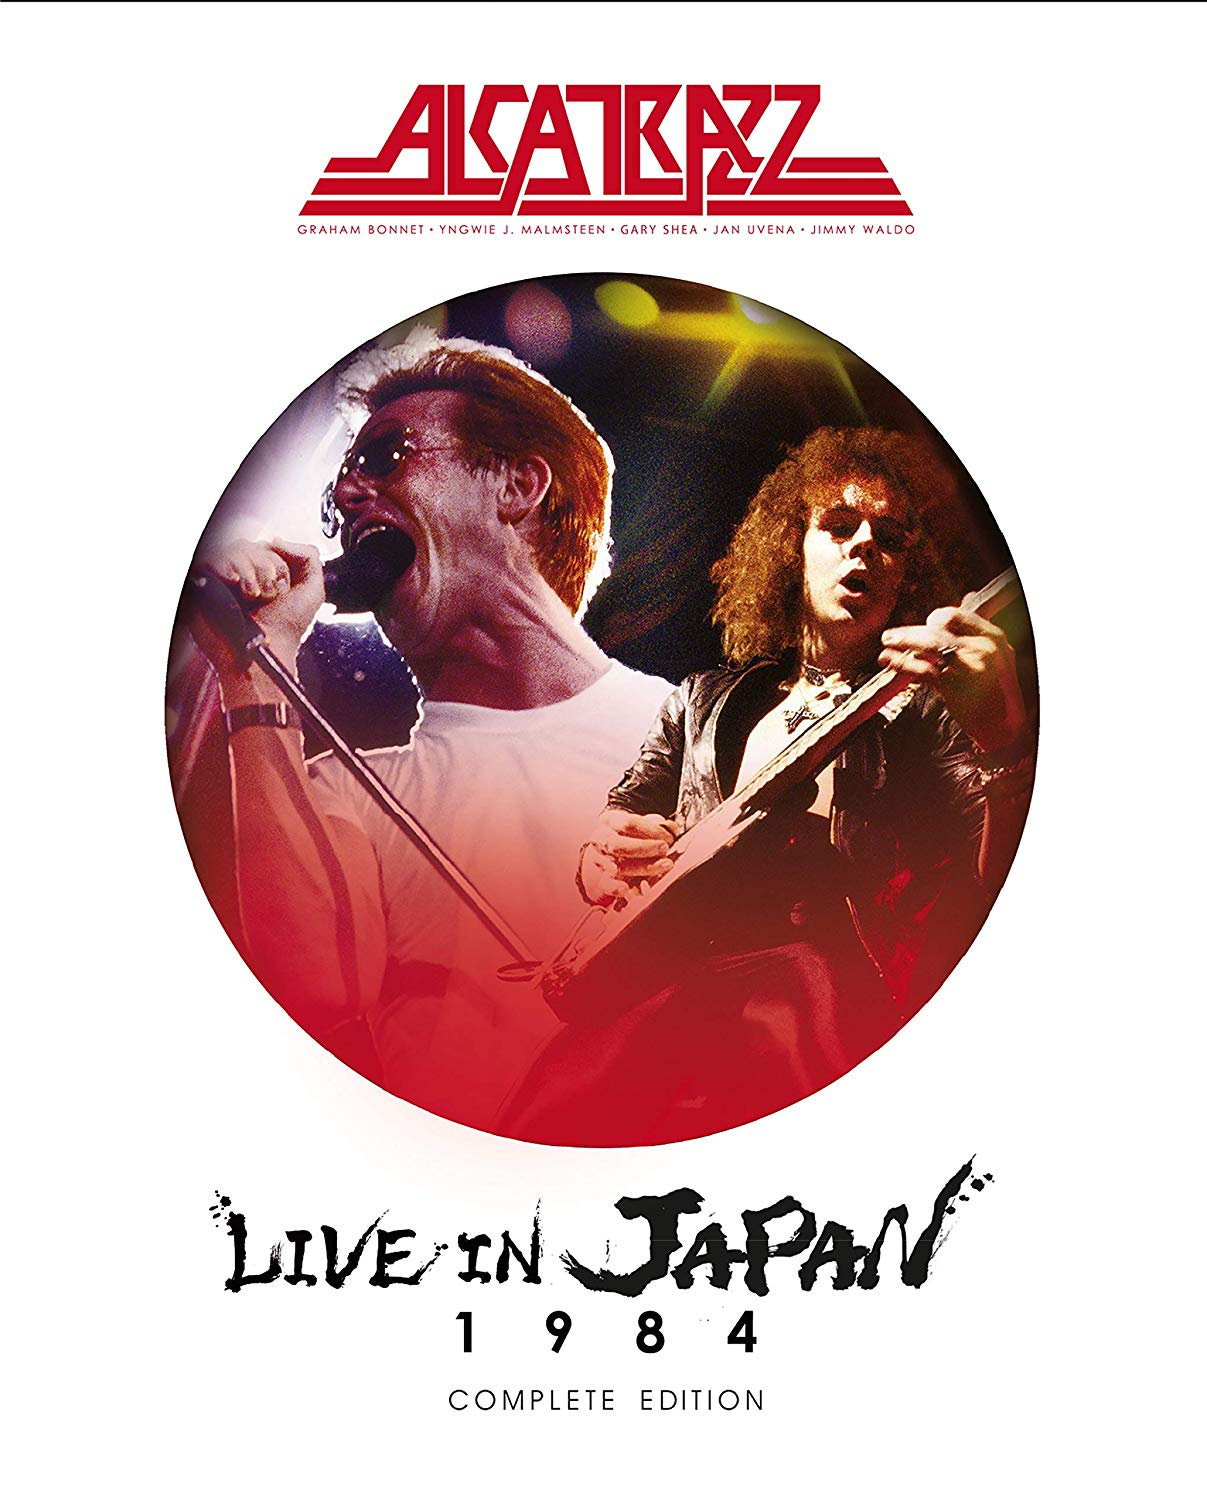 Alcatrazz - Live In Japan 1984 - Complete Edition [2CD/DVD]